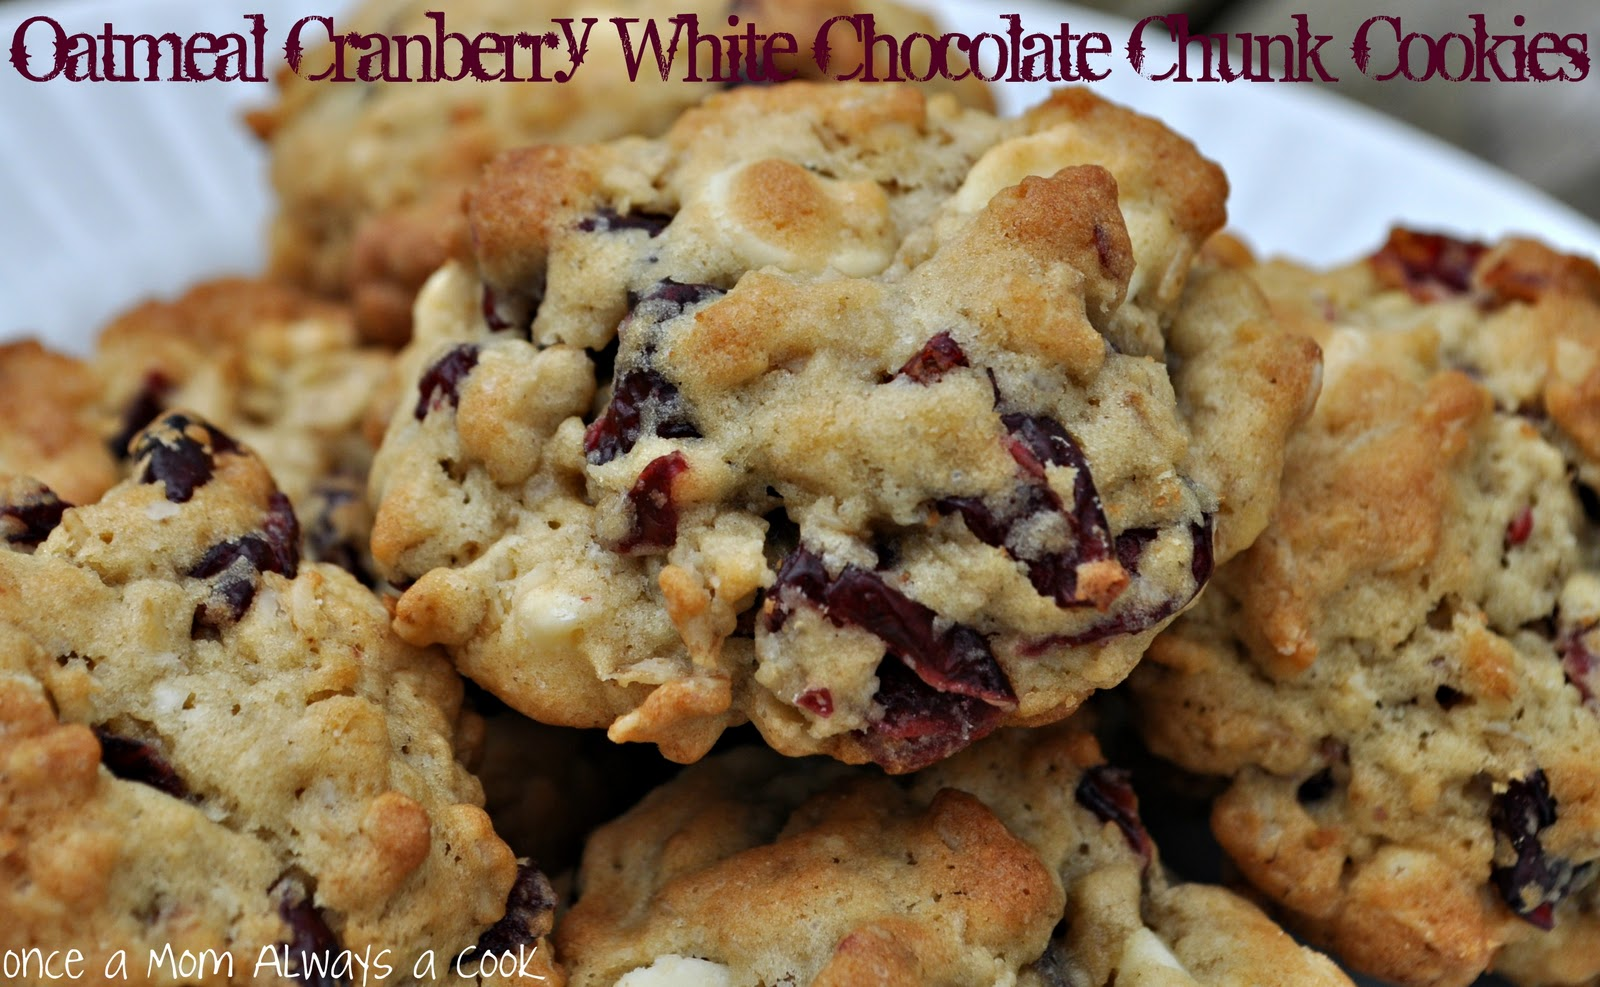 ... Mom Always a Cook: Oatmeal Cranberry White Chocolate Chunk Cookies